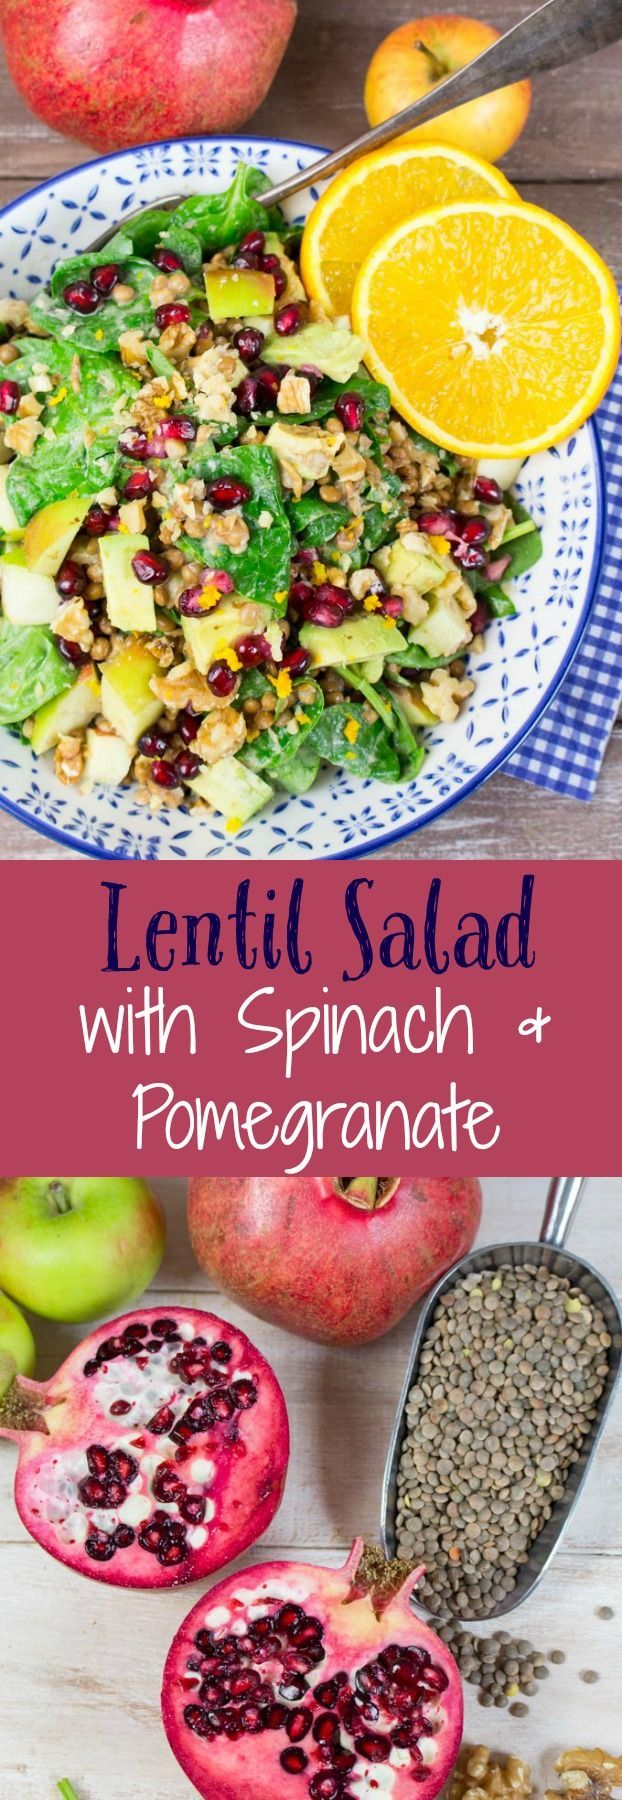 Super easy vegan lentil salad with spinach, pomegranate, apples, avocado, and walnuts. It's all topped off with an orange tahini dressing. Extremely delicious and packed with nutrients. Perfect for fall! #vegan #lentils #lentilsalad #spinachsalad #tahinidressing #pomegranate